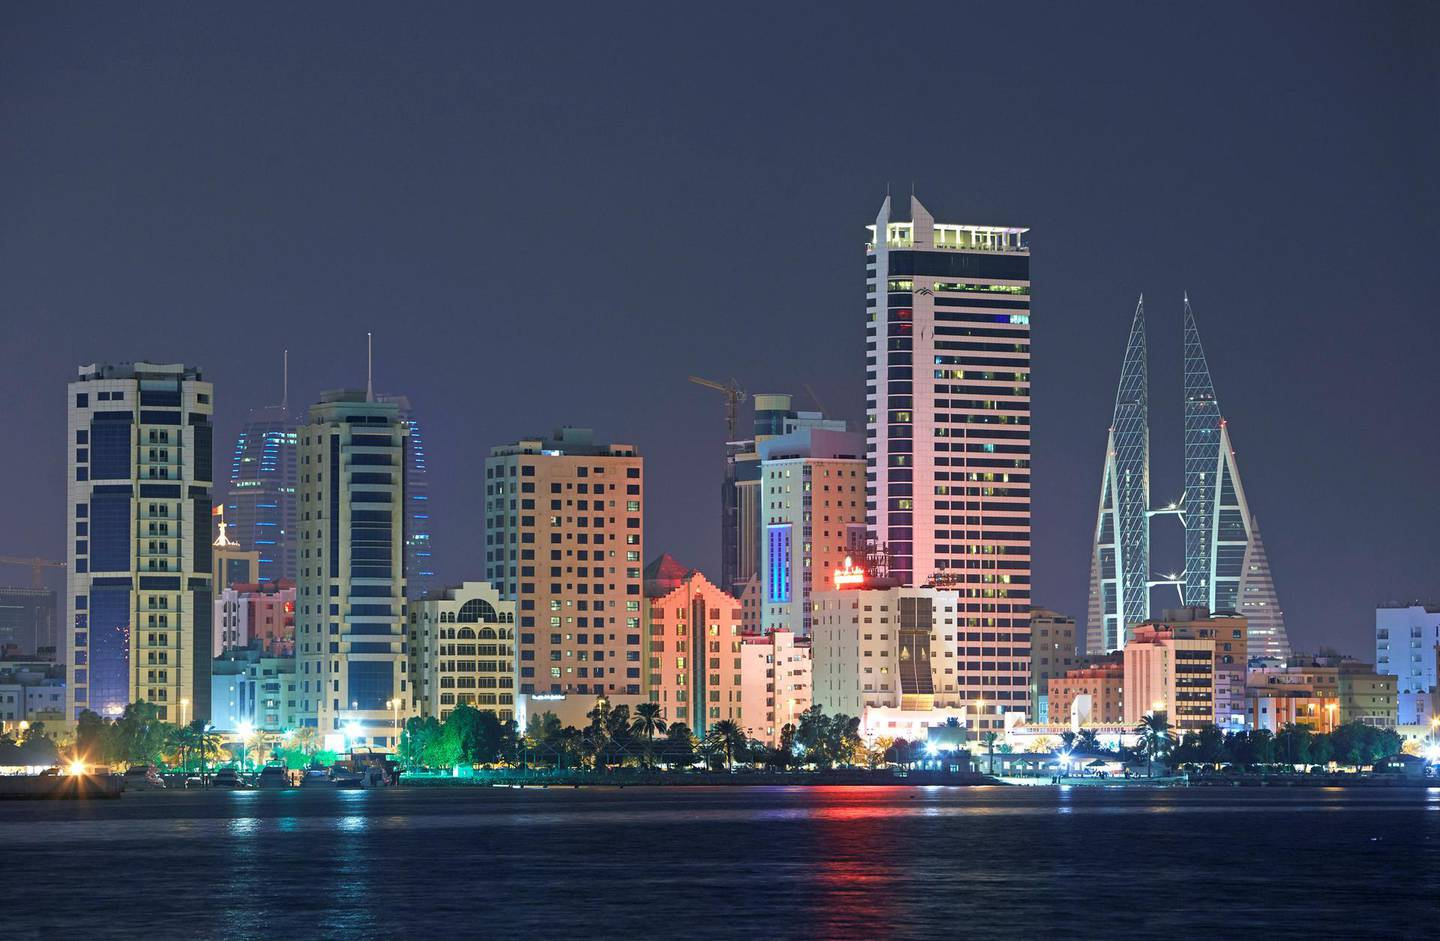 Cityscape of the hotels, skyscrapers and development along the 'Al Corniche' and the 'Diplomatic Area' of Manama in Bahrain illuminated at night.